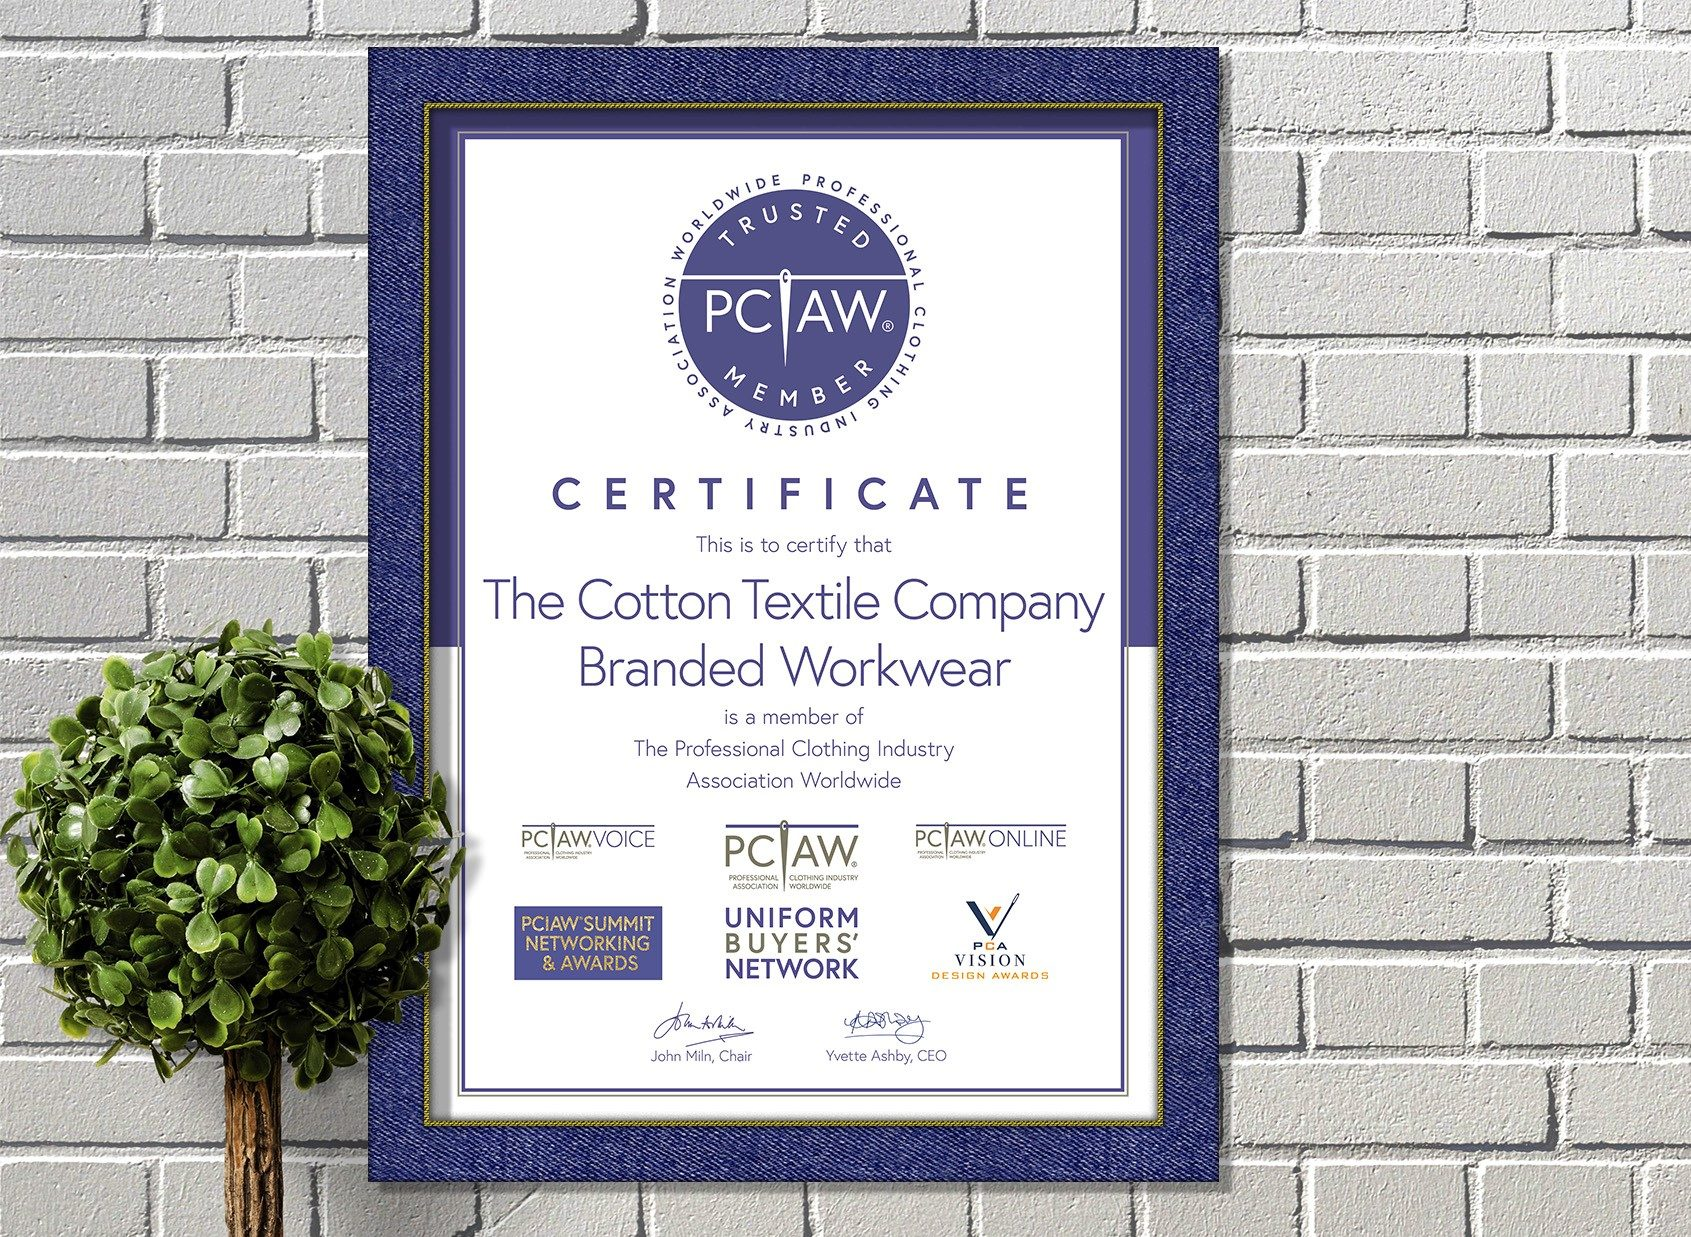 The PCIAW® is proud to include The Cotton Textile Company, Branded Workwear as a PCIAW® Trusted Member.